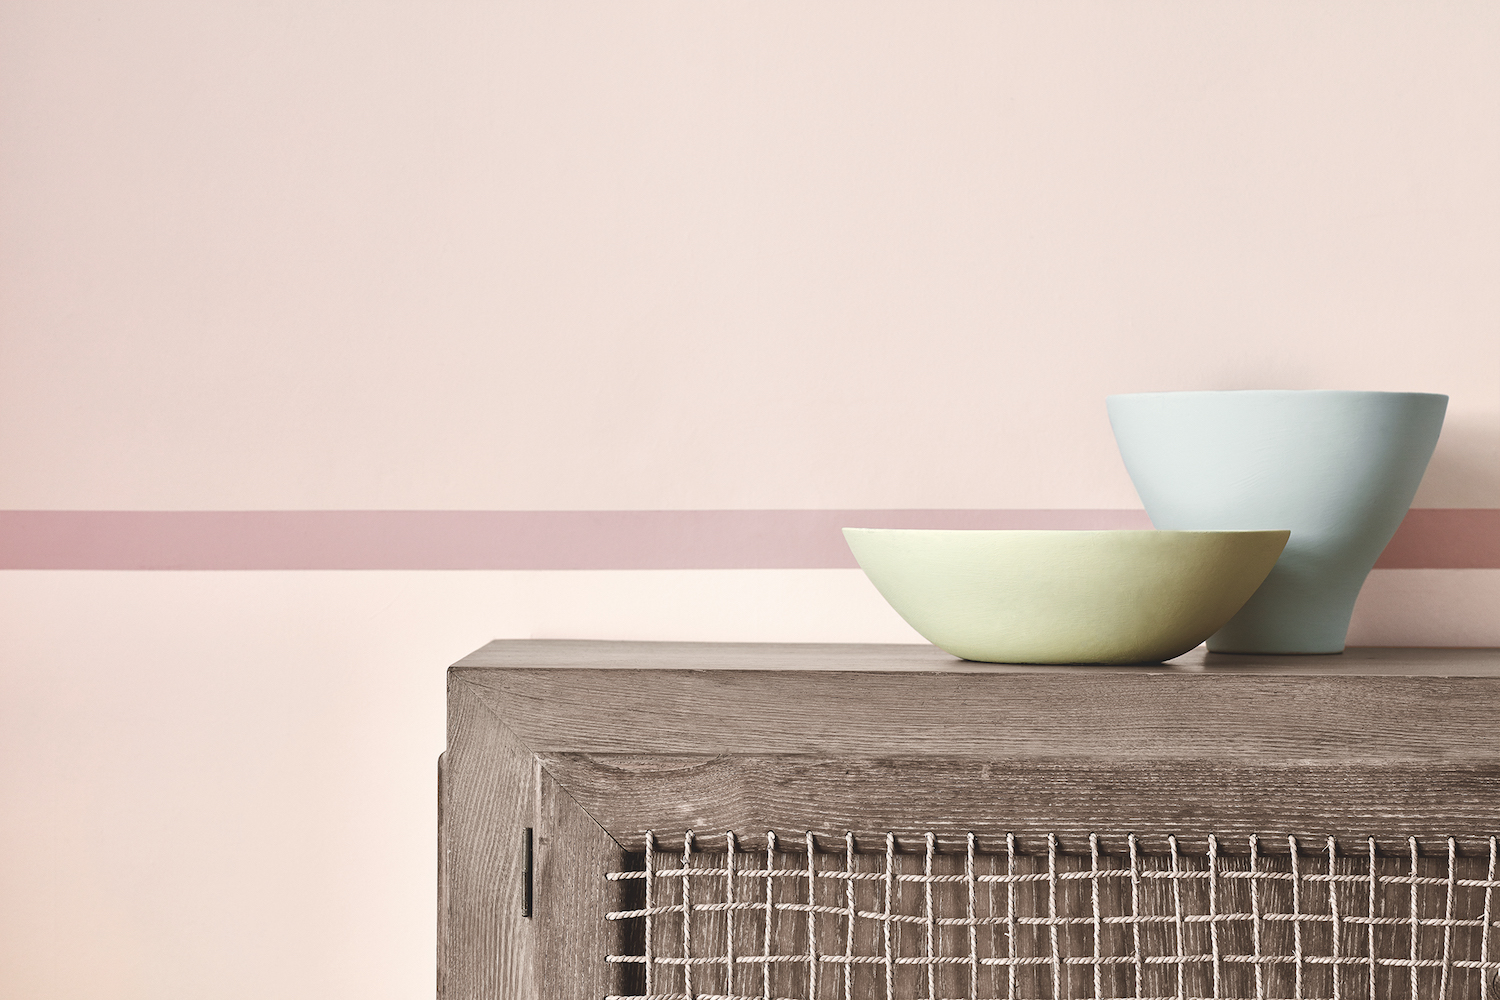 Wall: Dorchester Pink- Pale 285, Detail Outer Stripe and Skirting: Dorchester Pink 213, Large Inner Stripe and Left Wall: Dorchester Pink - Deep 287, Left Bowl: Acorn 87, Right Bowl: Drizzle 217